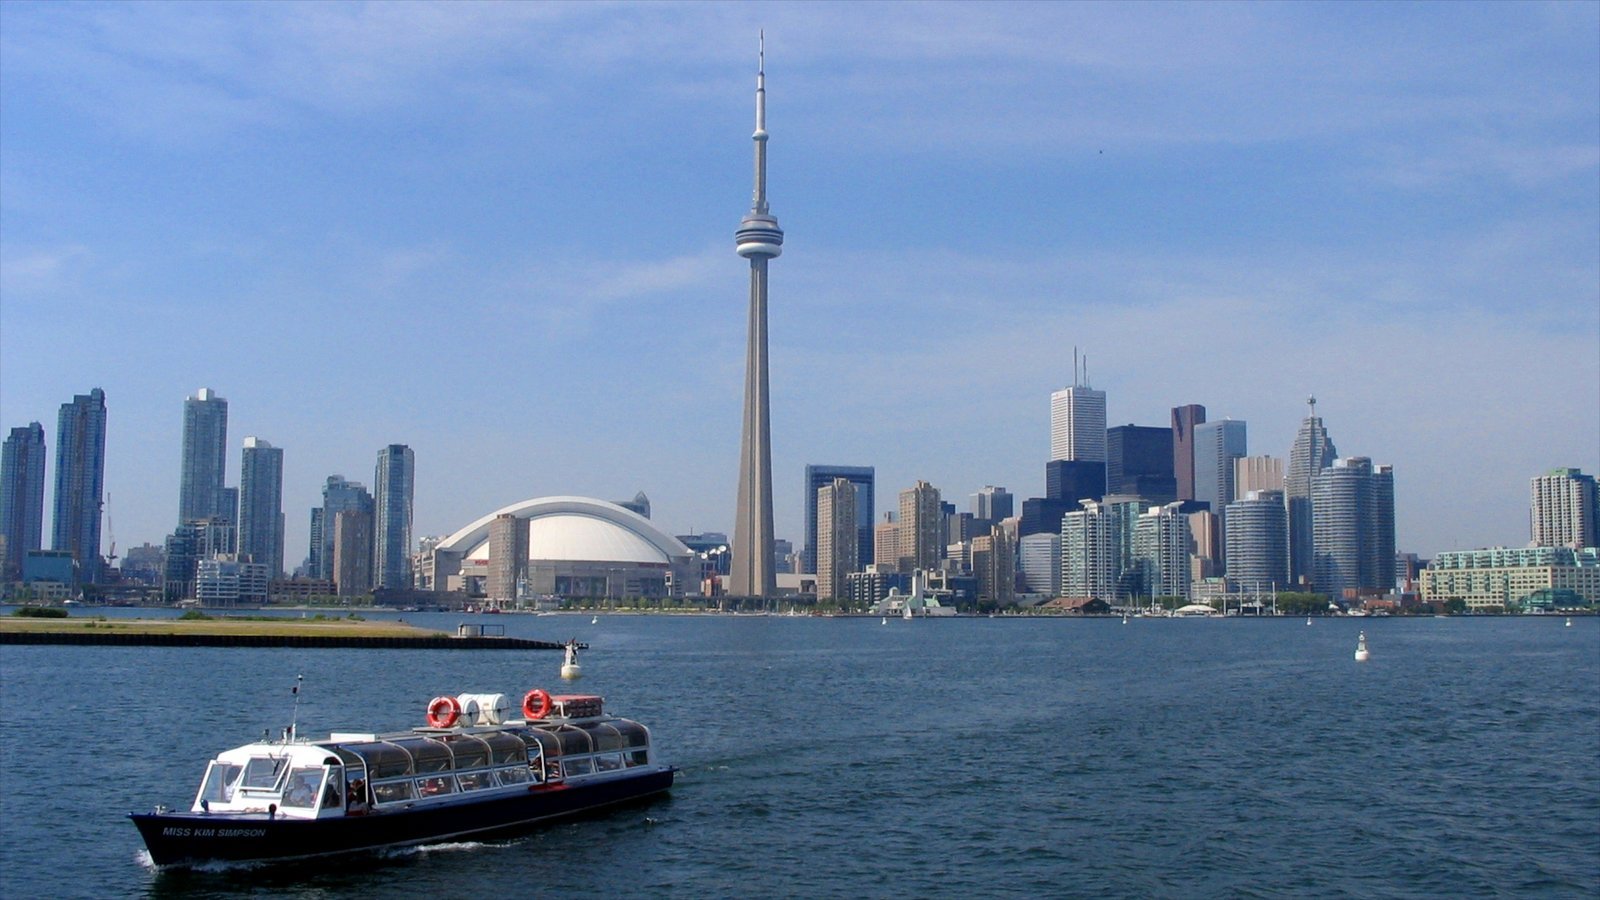 CN Tower showing modern architecture, a ferry and general coastal views